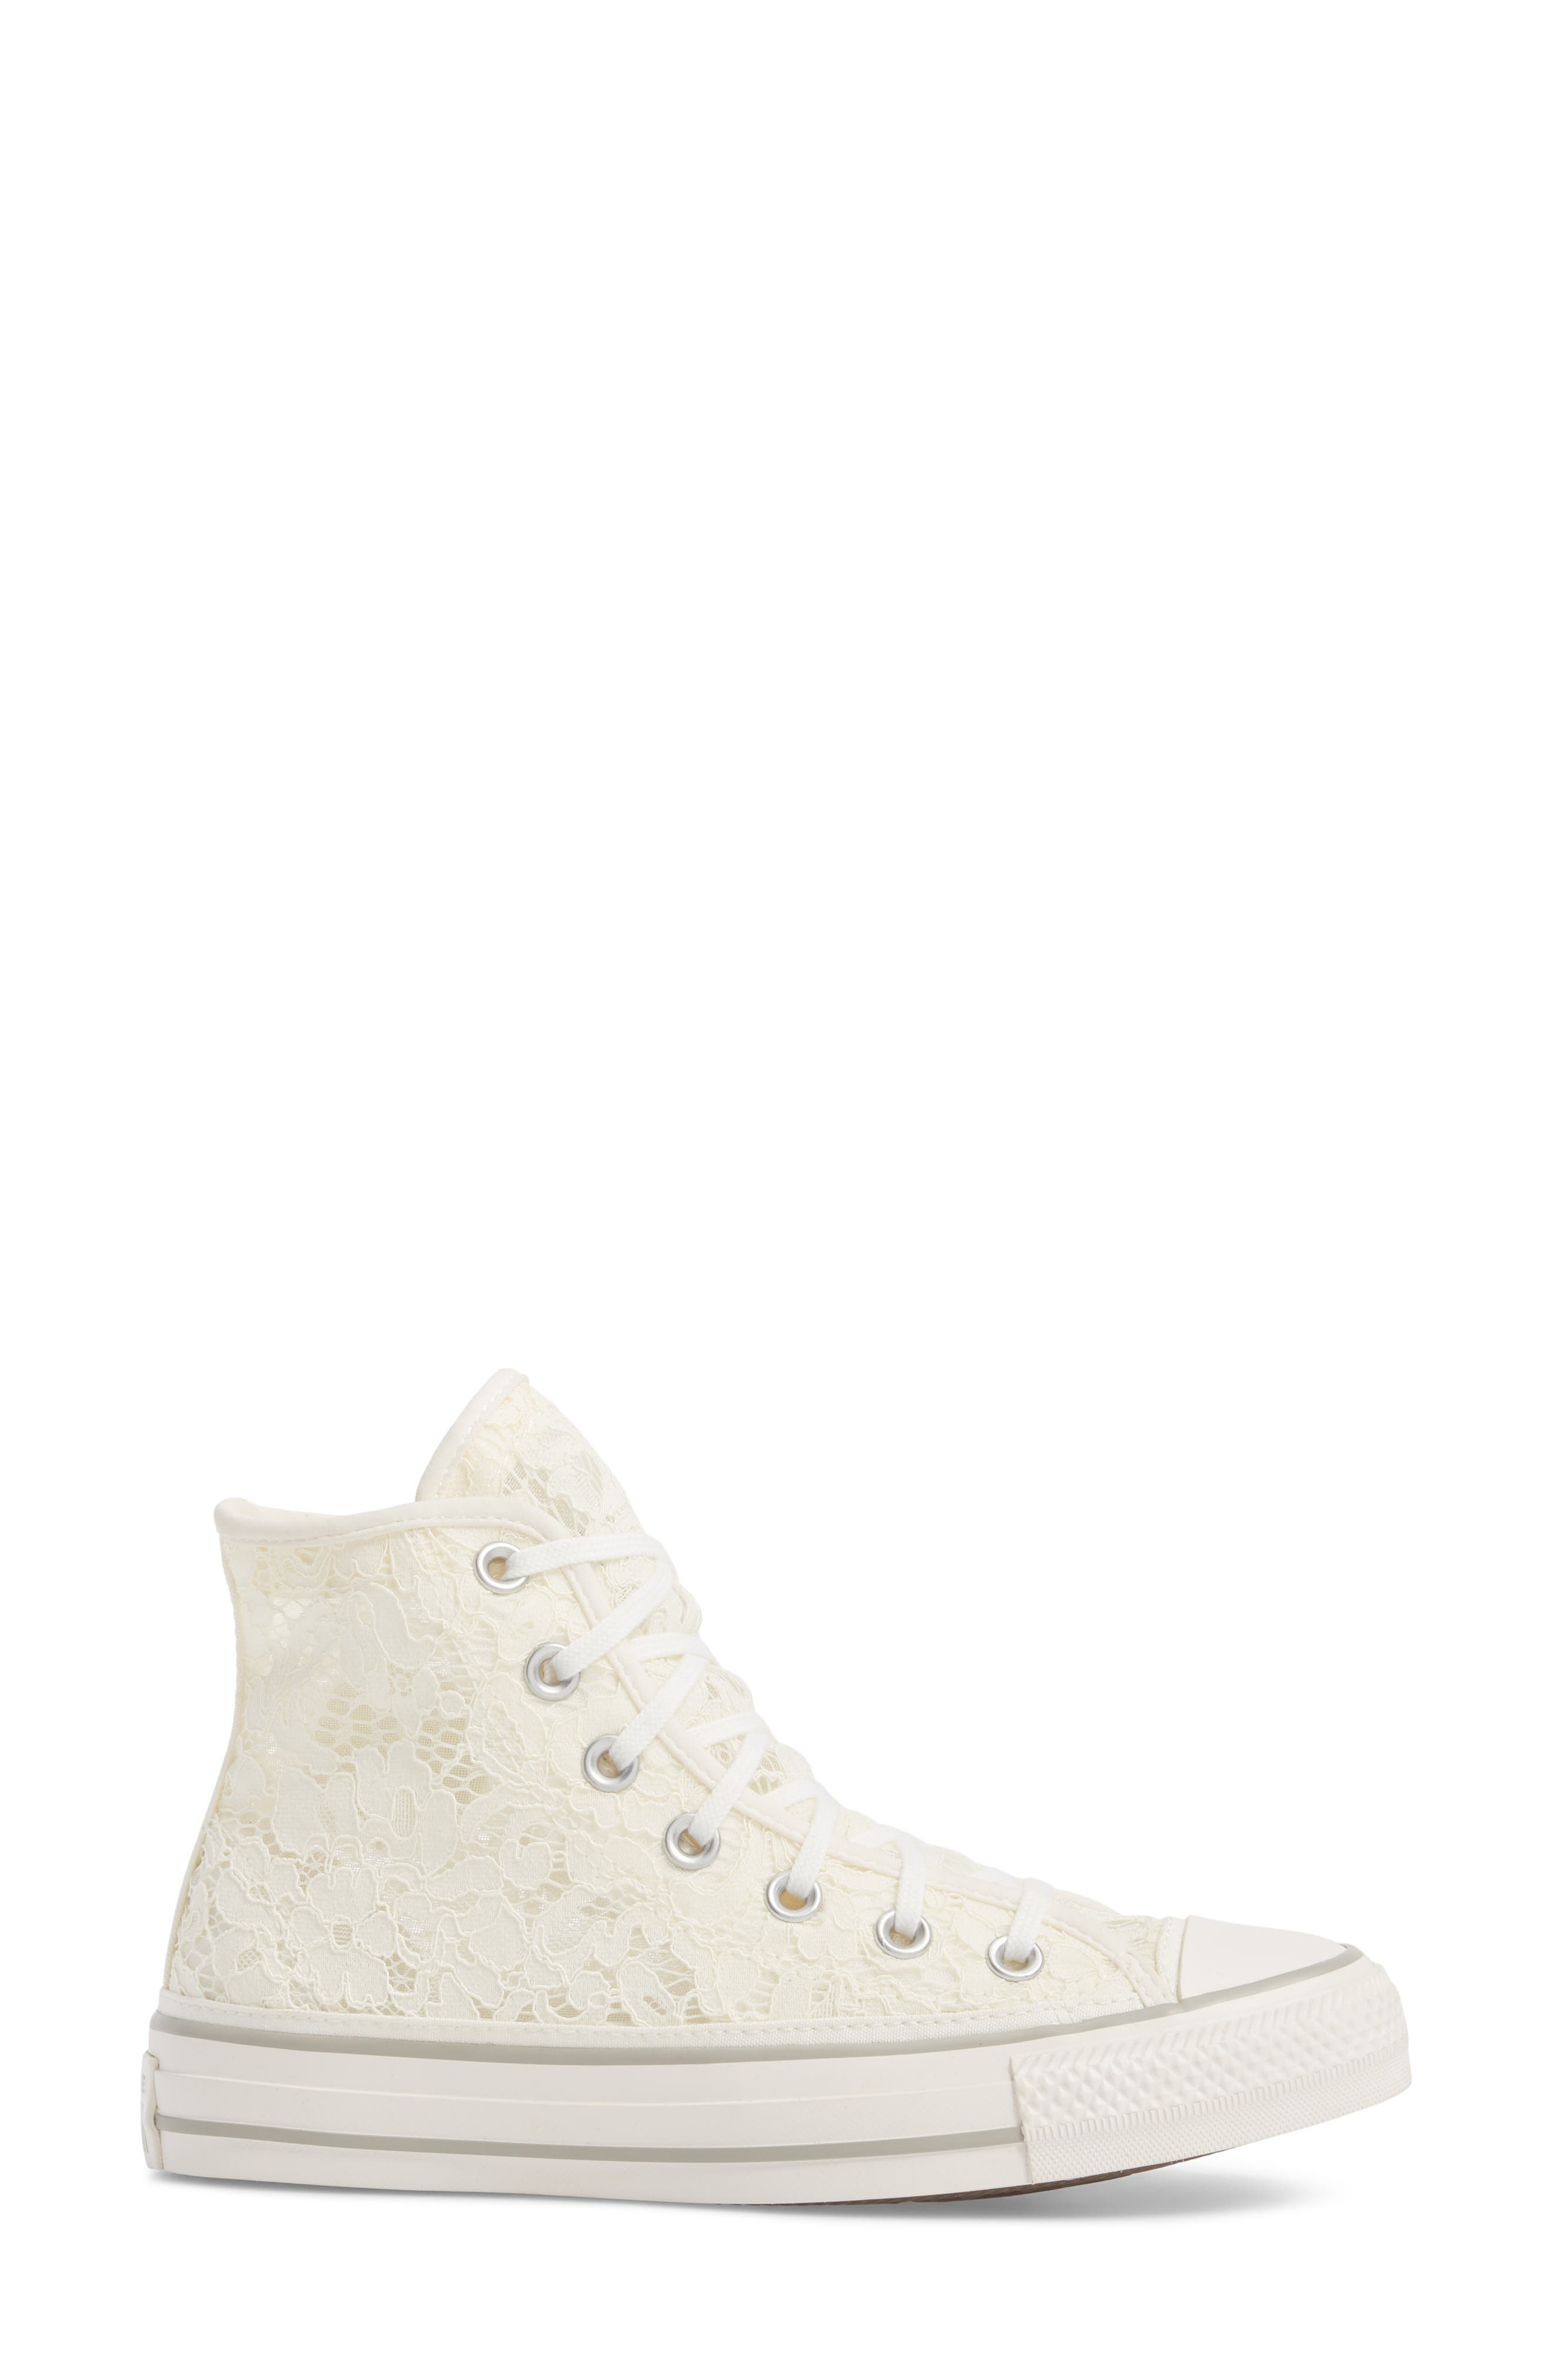 Chuck Taylor<sup>®</sup> All Star Lace High-Top Sneaker,                             Alternate thumbnail 6, color,